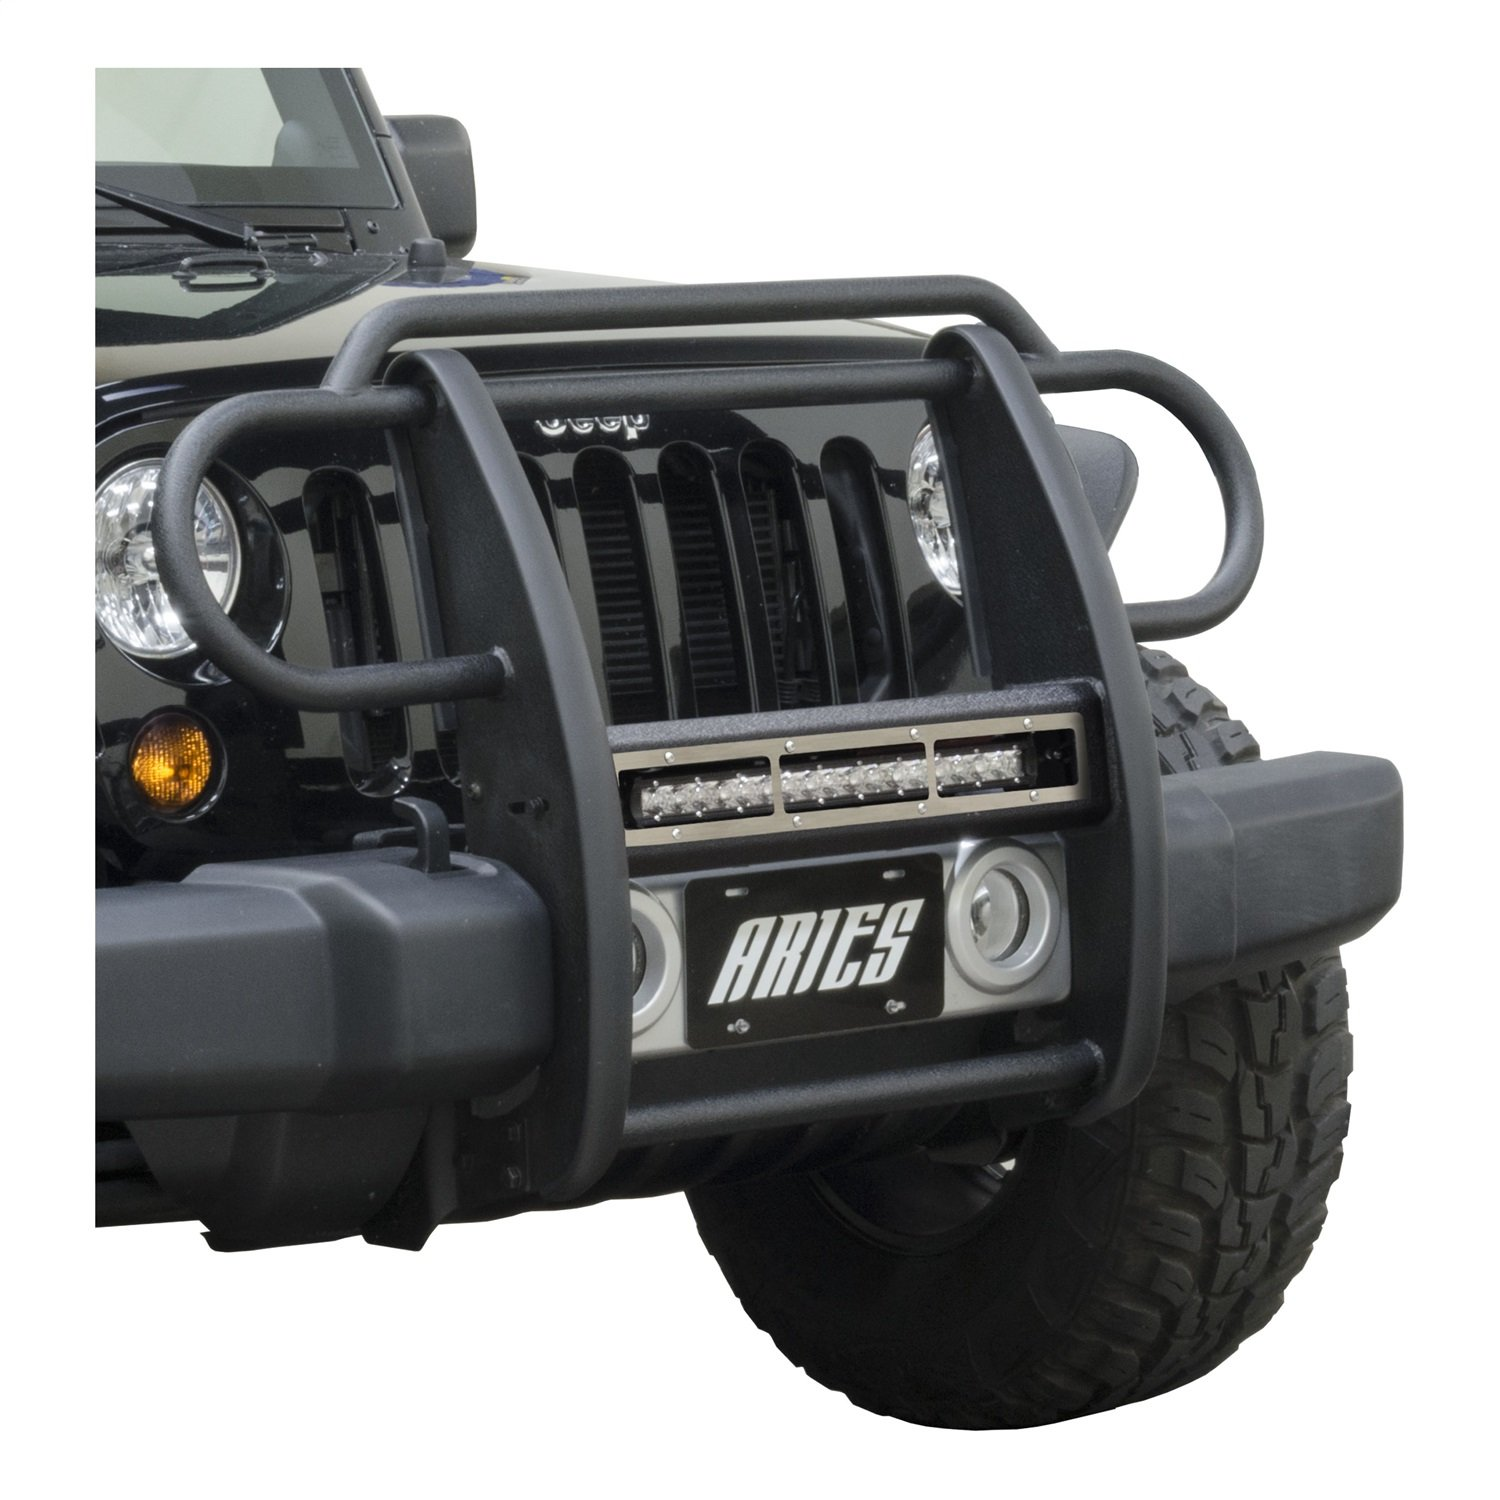 ARIES PJ20OS Pro Series Jeep 20 Brushed Stainless Steel Grille Guard Cover Plate